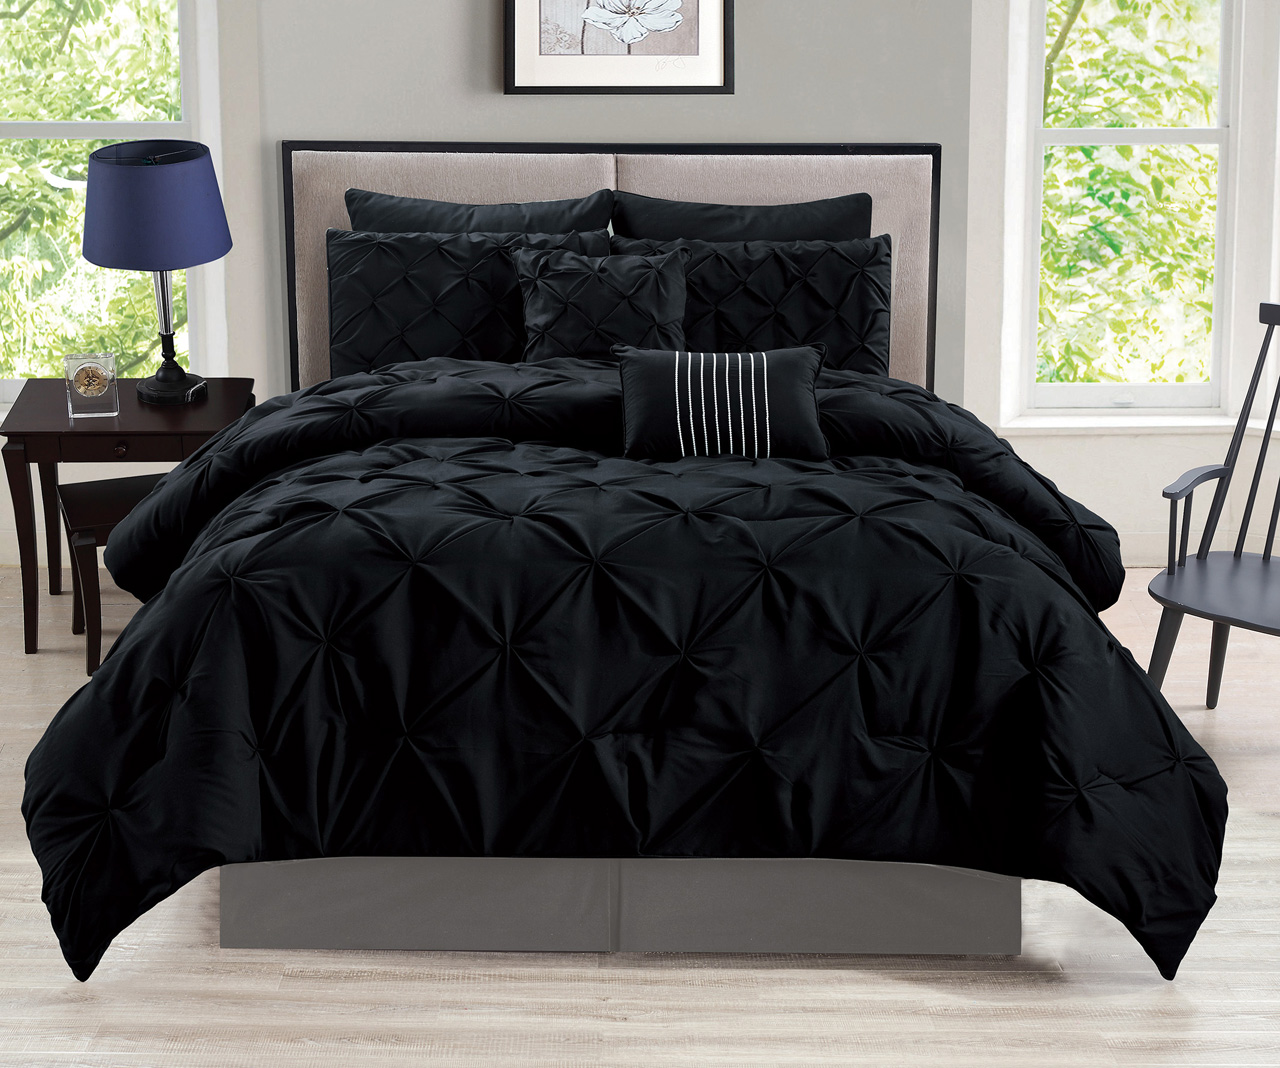 black bedroom comforter sets 8 rochelle pinched pleat black comforter set 14565